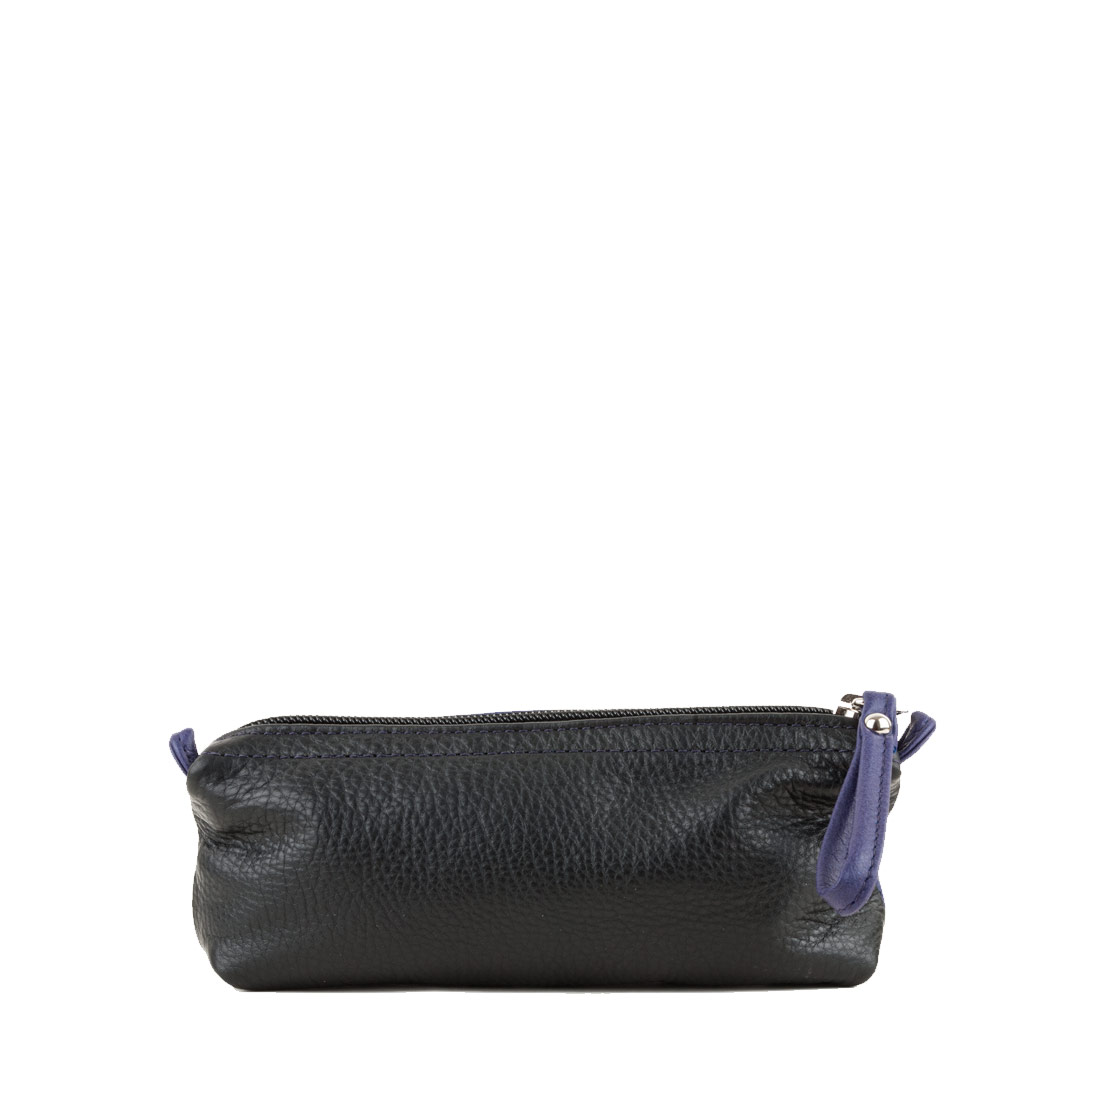 Make Up Bag In Purple